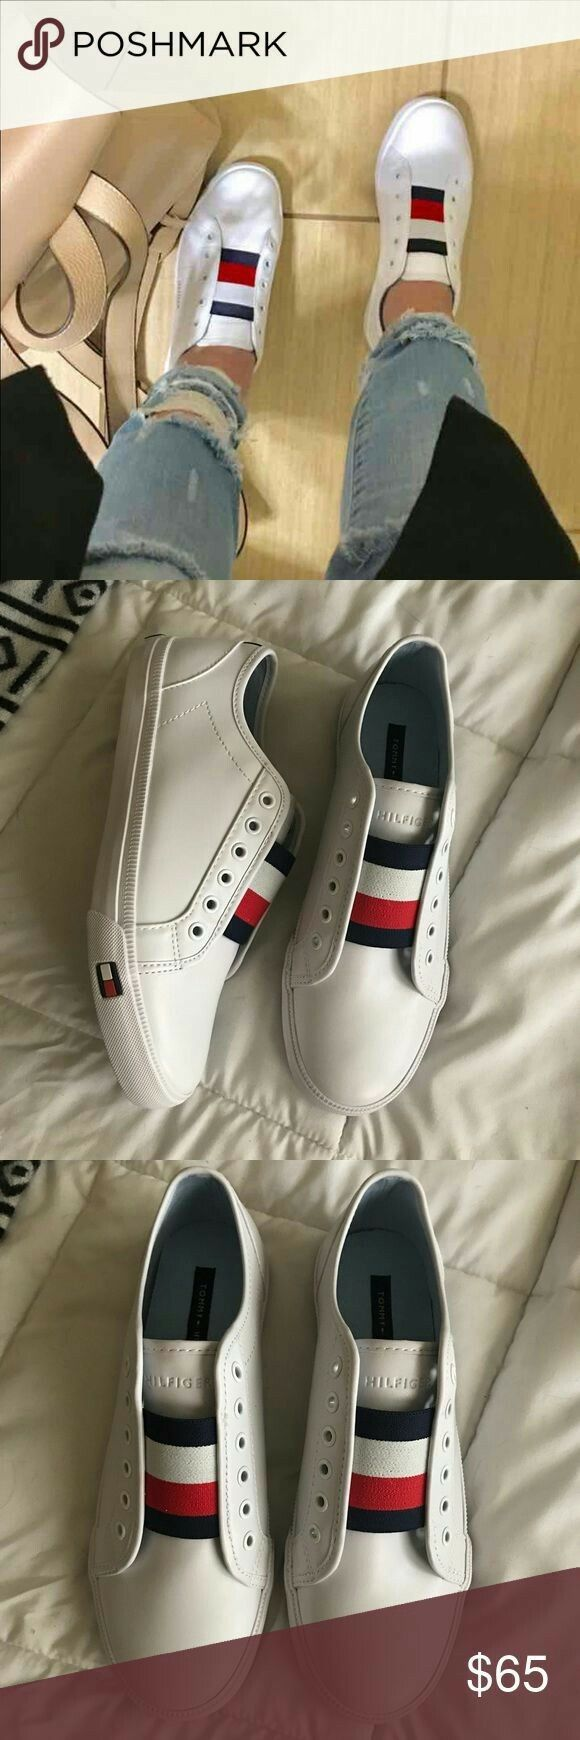 Pin By O Amer 5 On Shoes Tommy Hilfiger Sneakers Tommy Shoes Tommy Hilfiger Fashion